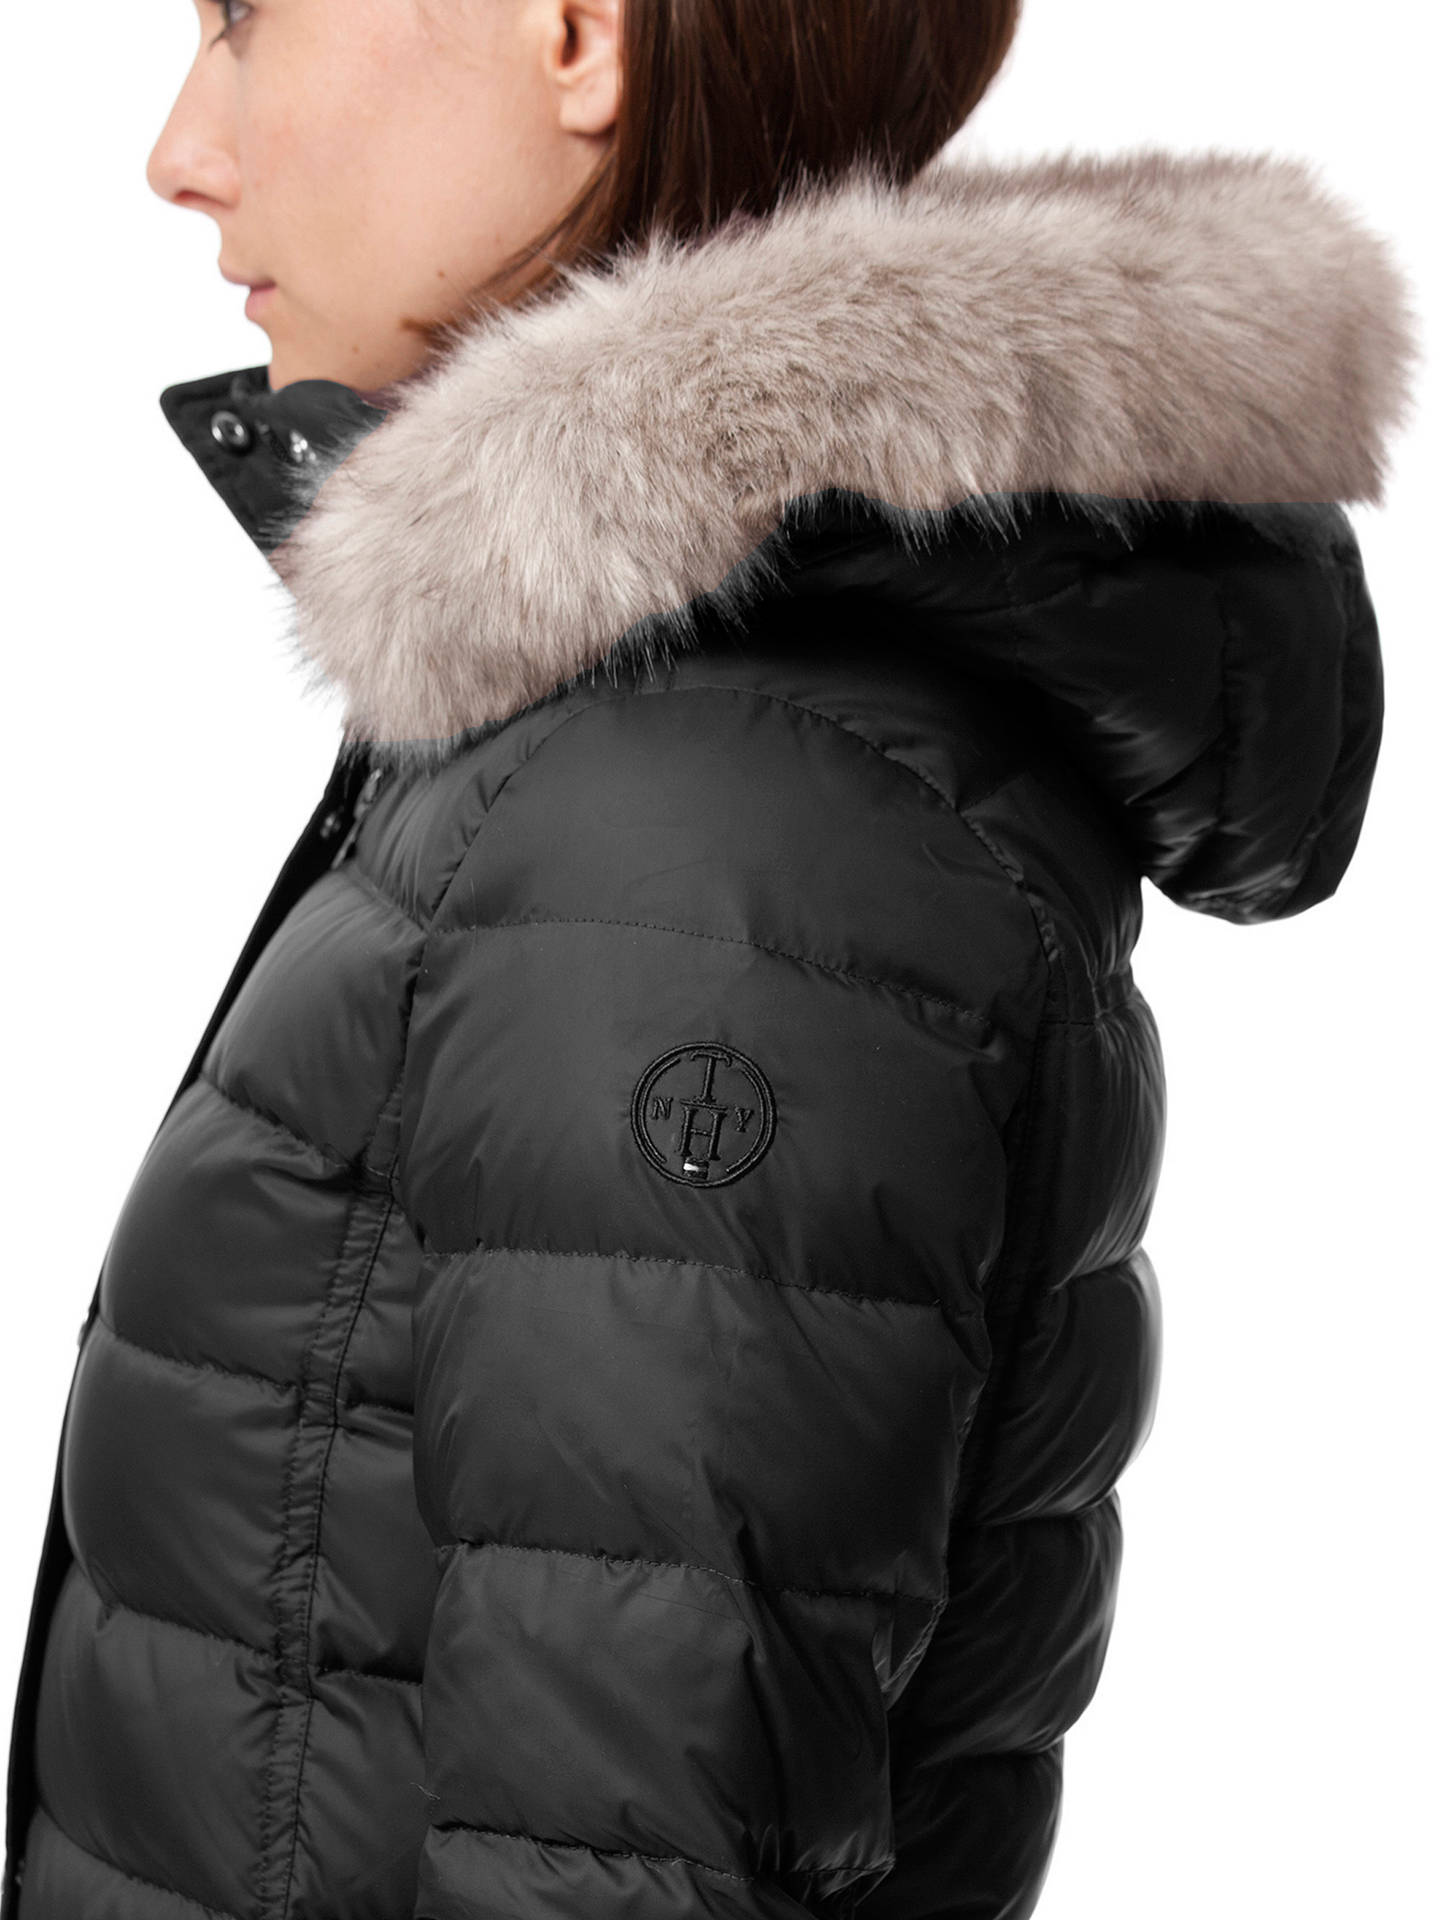 51f8e8dd ... Buy Tommy Hilfiger Tyra Down Coat, Masters Black, S Online at  johnlewis.com